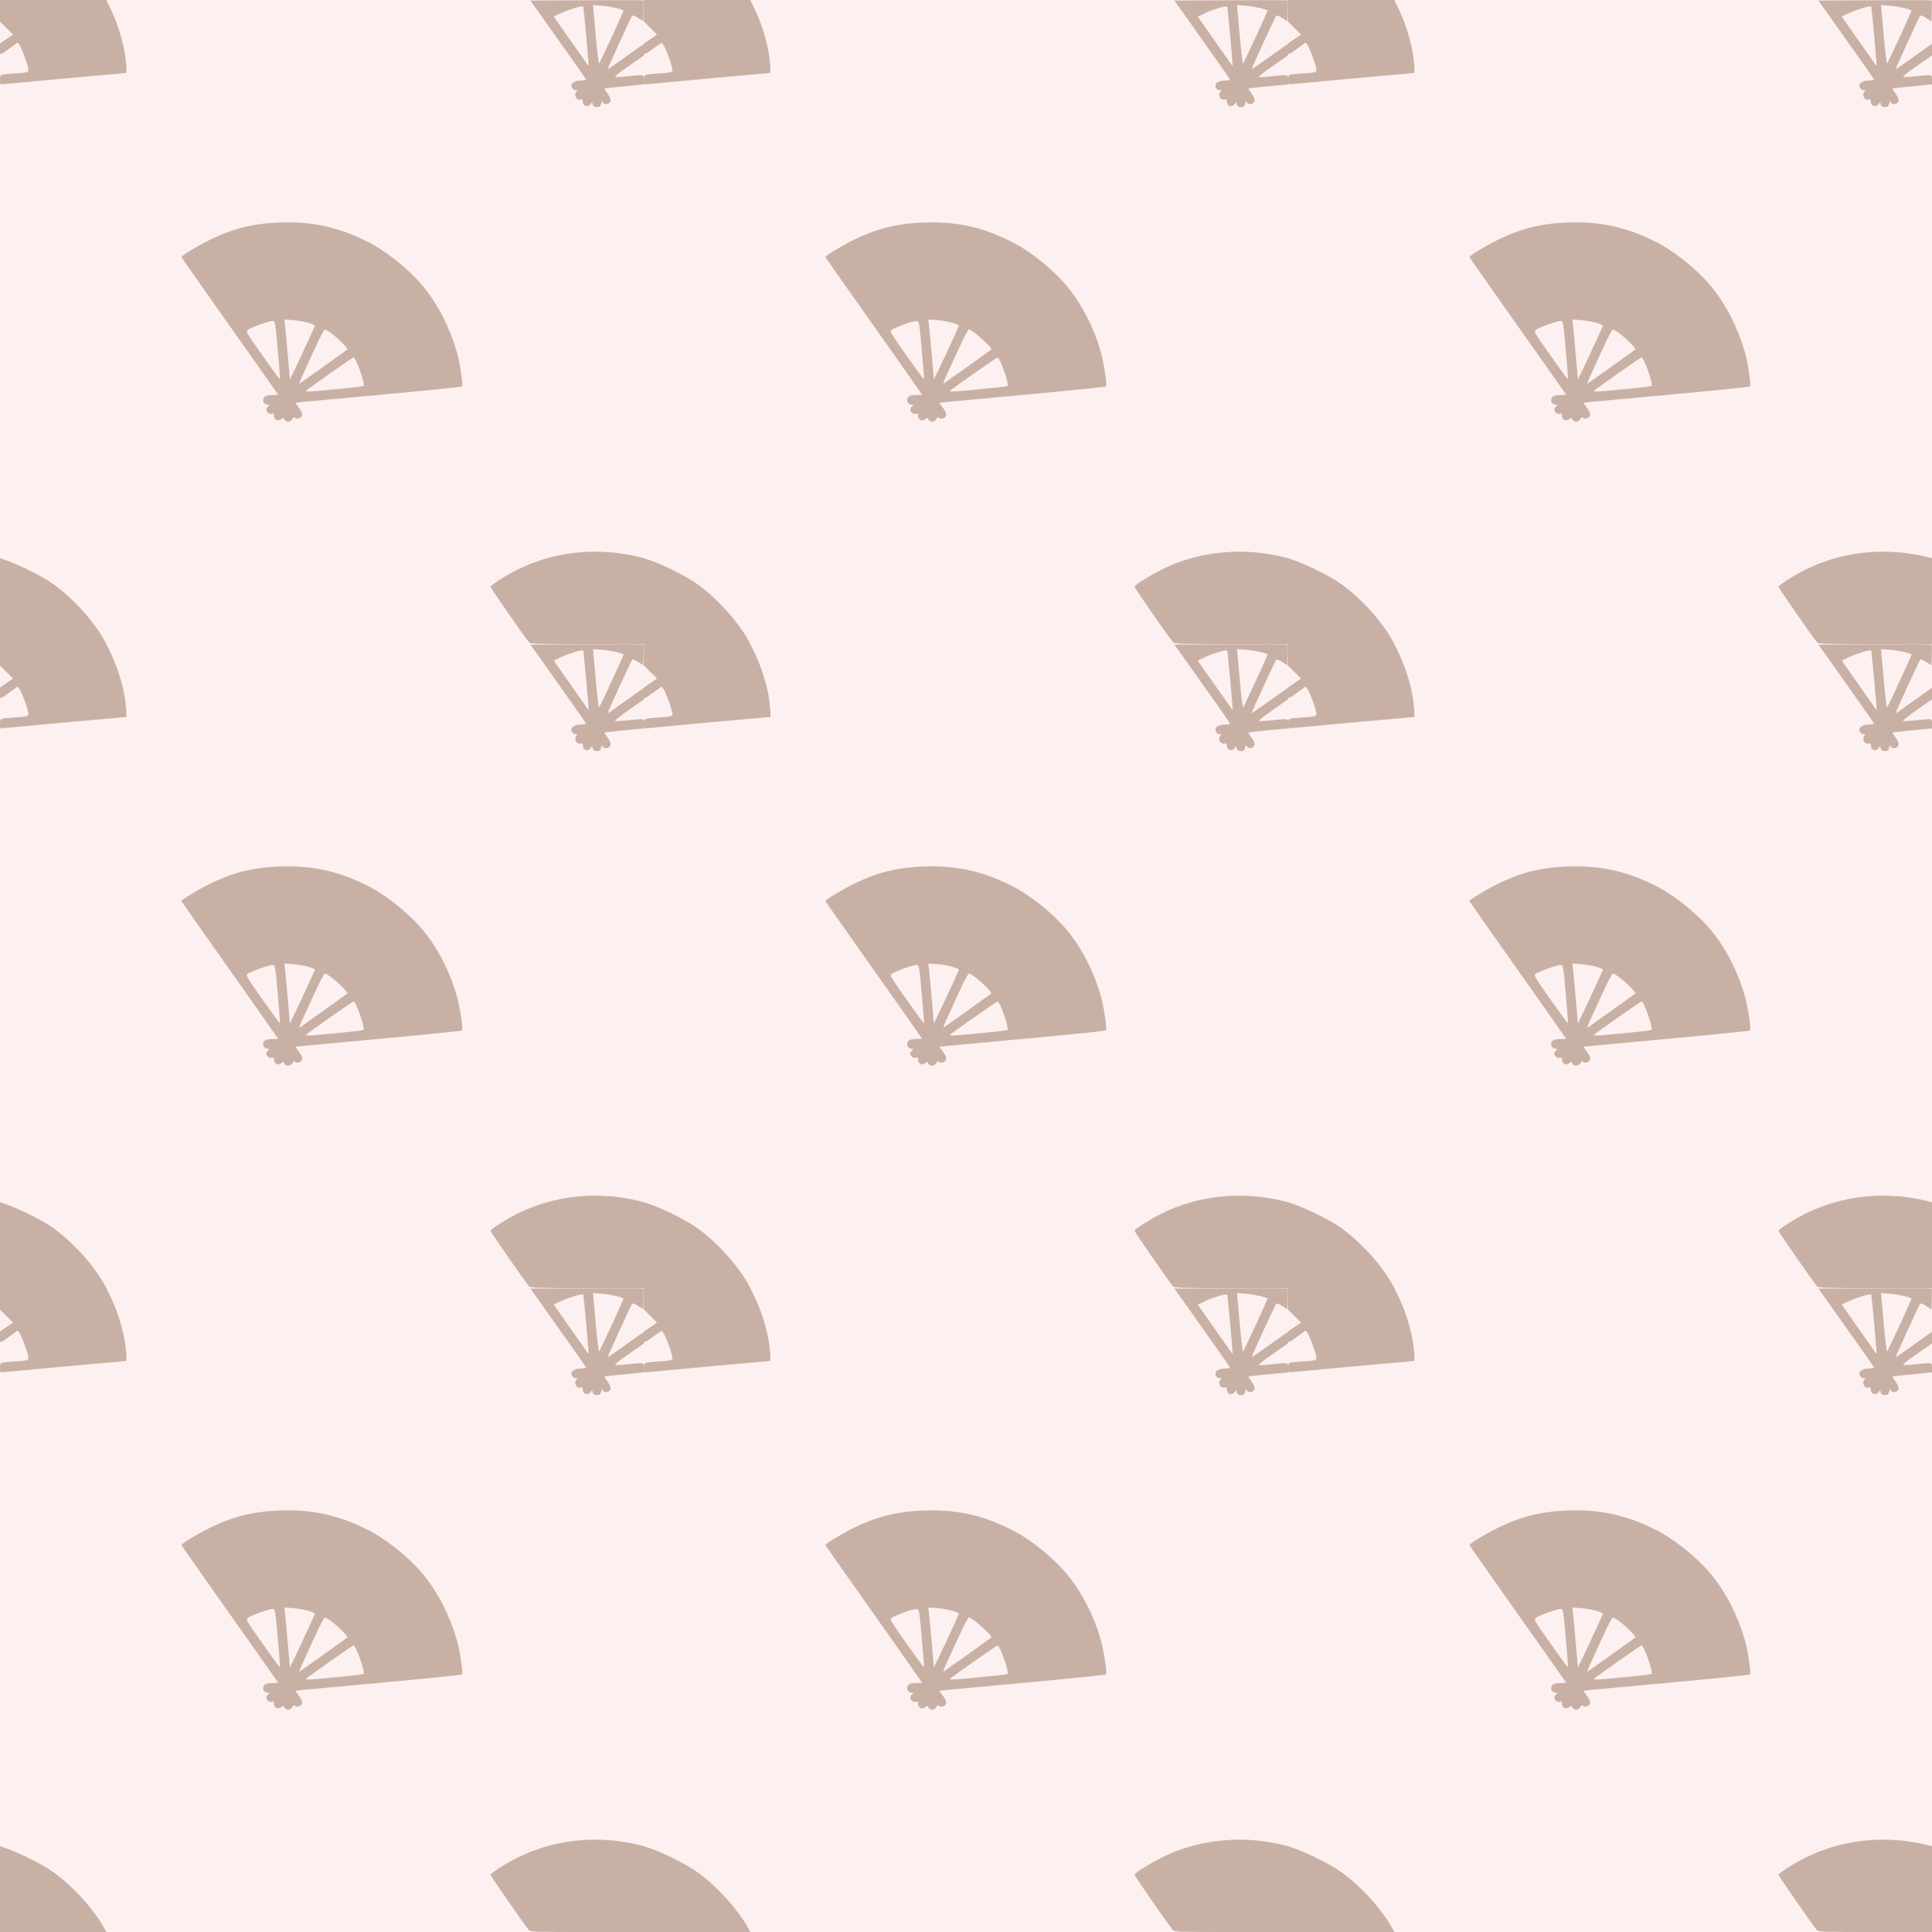 Japanese fan-seamless pattern by yamachem